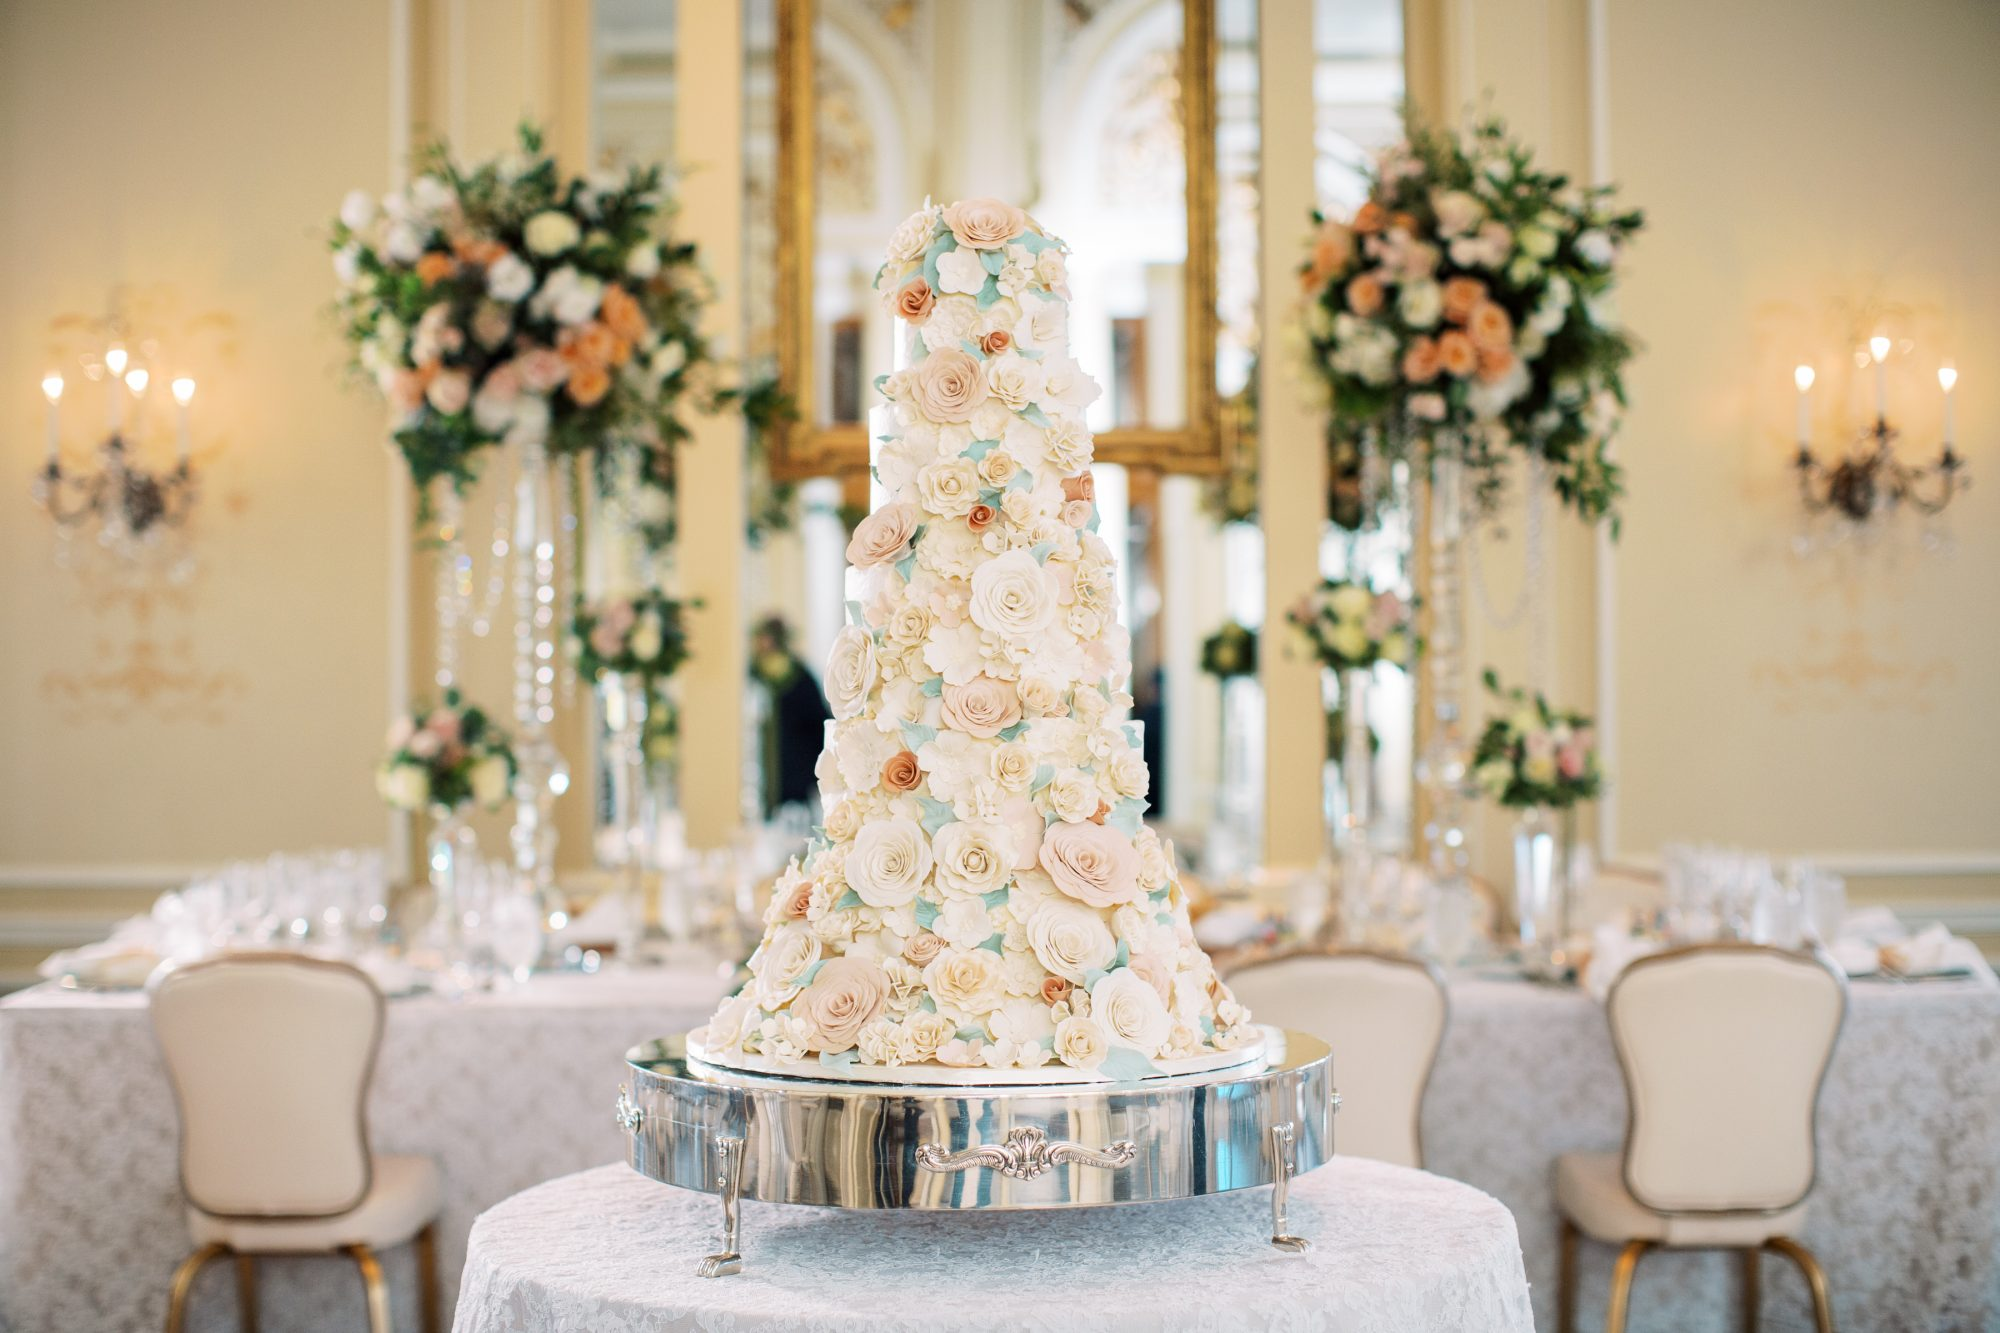 erinn andrew wedding cake with floral design